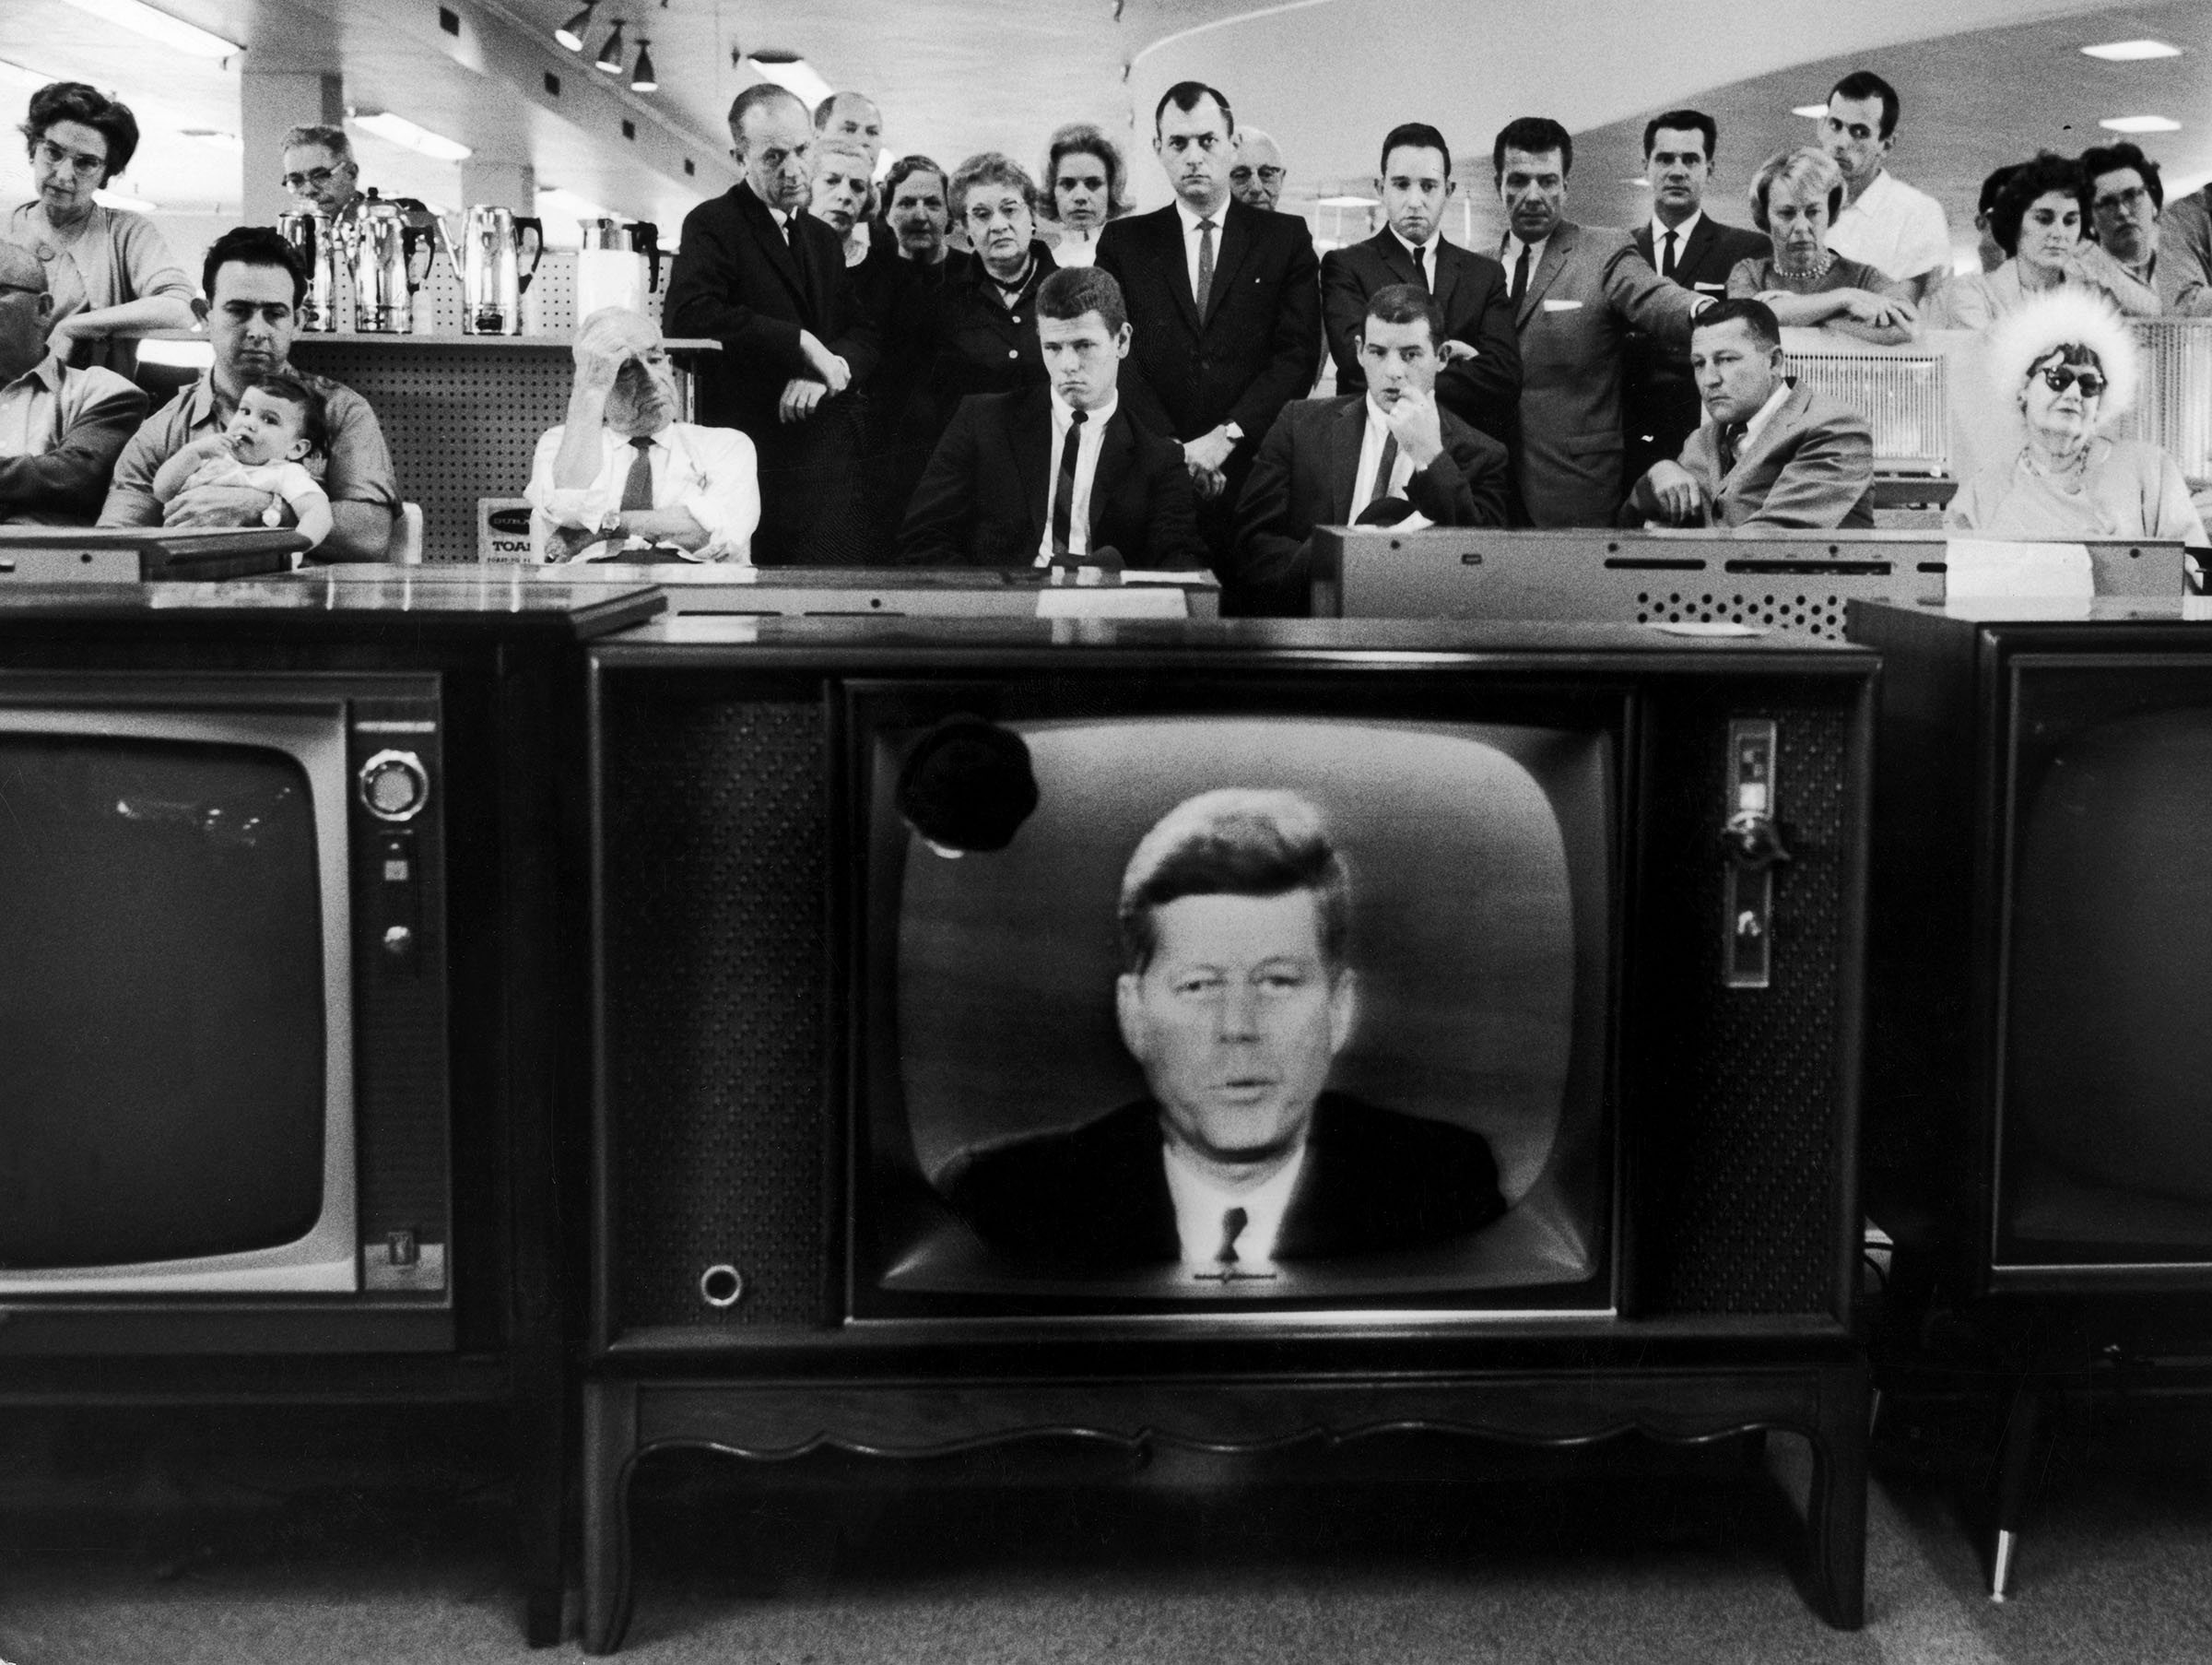 People watching President John F. Kennedy's TV announcement of Cuban blockade during the missile crisis in a department store in California on Oct.22, 1962.